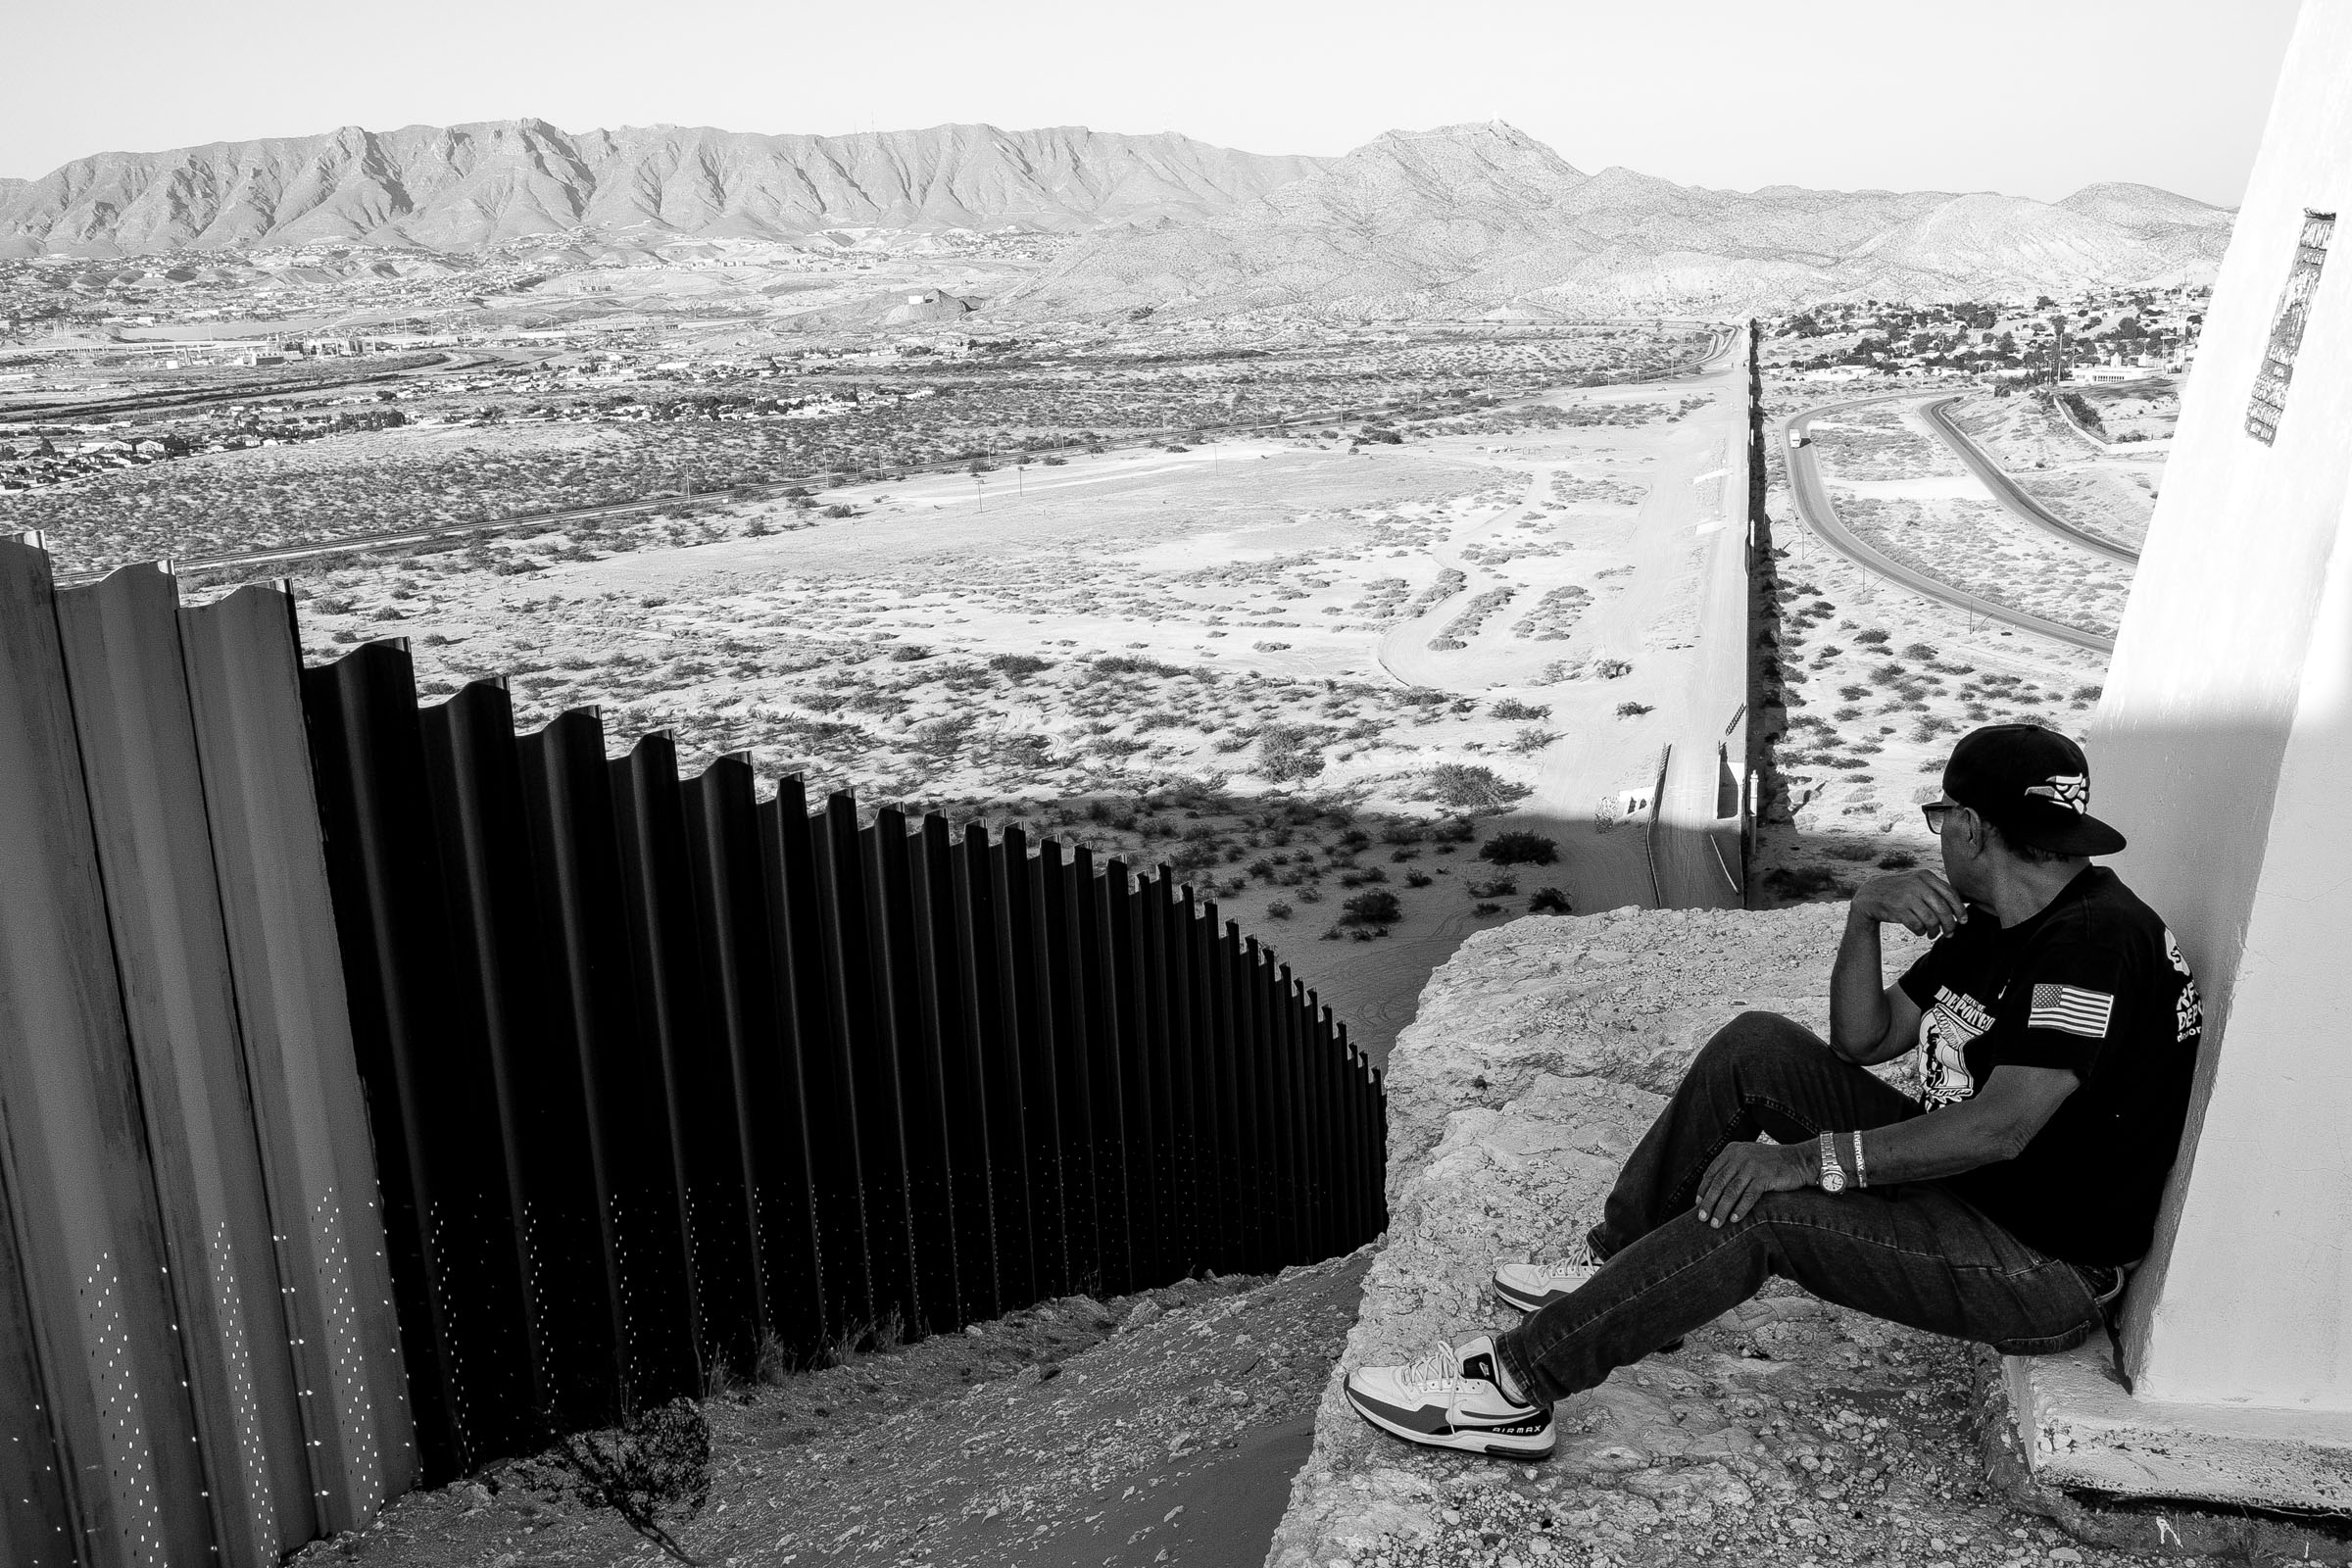 Deported U.S. Army veteran Jose Francisco Lopez Moreno, 73, overlooks the fence separating him from the United States as he sits along a hill in Ciudad Juárez, Chihuahua, México, Monday, July 23, 2018.   Lopez Moreno was drafted to the U.S. Army during the Vietnam War in 1967. He deployed to Vietnam from 1968 to 1969 serving in combat even though he did not speak a word of English. Latino veterans in his unit would translate for him during his time in the service. He was assigned to work in transportation and at night he would be on guard duty at a helicopter base in Vietnam where he also performed rescue missions when helicopters were shot down.   Twenty six years after his military discharge, Lopez Moreno was arrested in a hotel room in Wichita Falls, Texas. He was caught purchasing cocaine from a police officer and was charged with intent to purchase and distribute narcotics in 1995. He was sentenced to nine years in prison and served eight years behind bars with a one year reduction for good conduct. In 2003, he was deported to Mexico because the crime he was sentenced for is considered an aggravated felony—a deportable offense for a green card holder. (Photo by Joel Angel Juárez/GroundTruth)